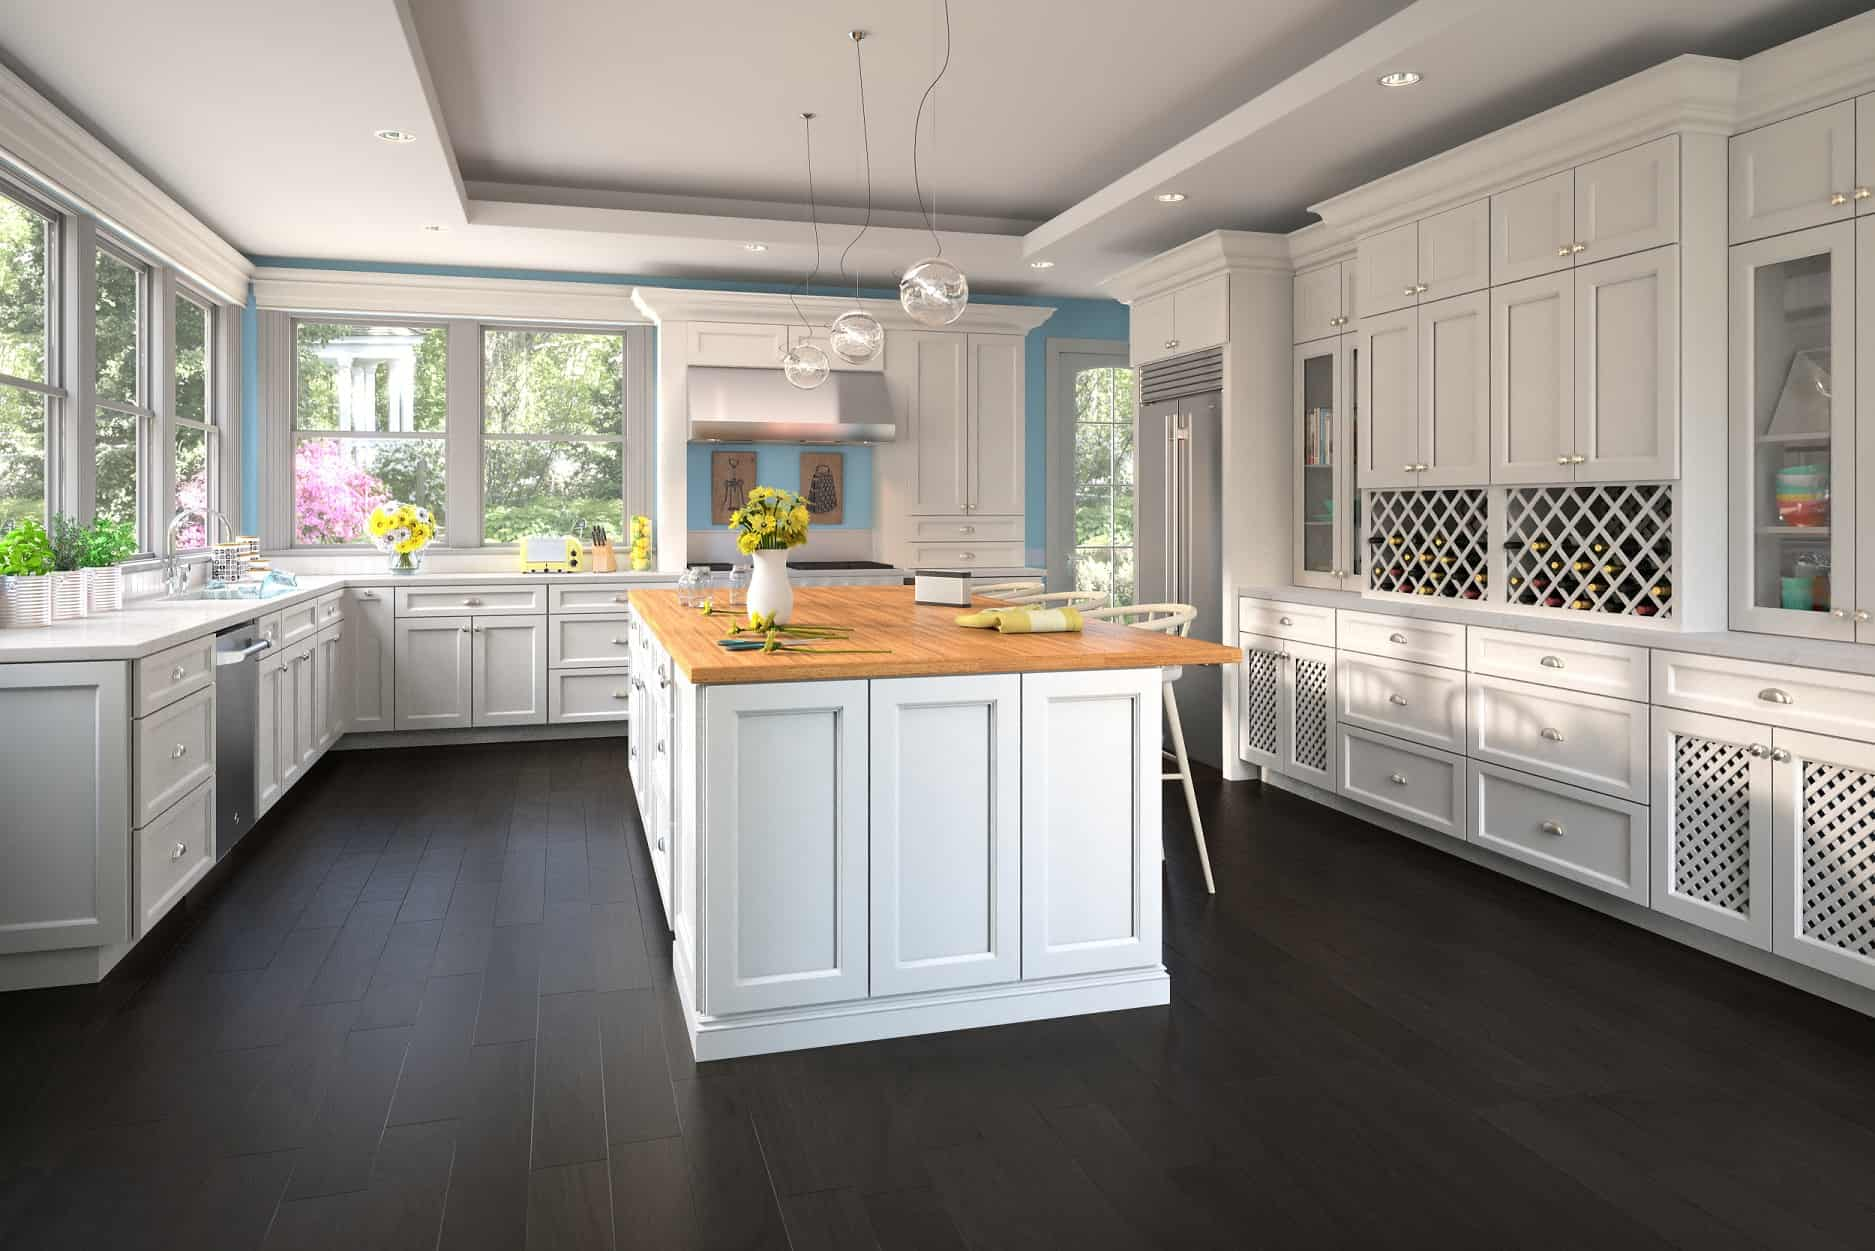 what is the potential cost to refinish your old kitchen cabinets kitchen cabinet cost